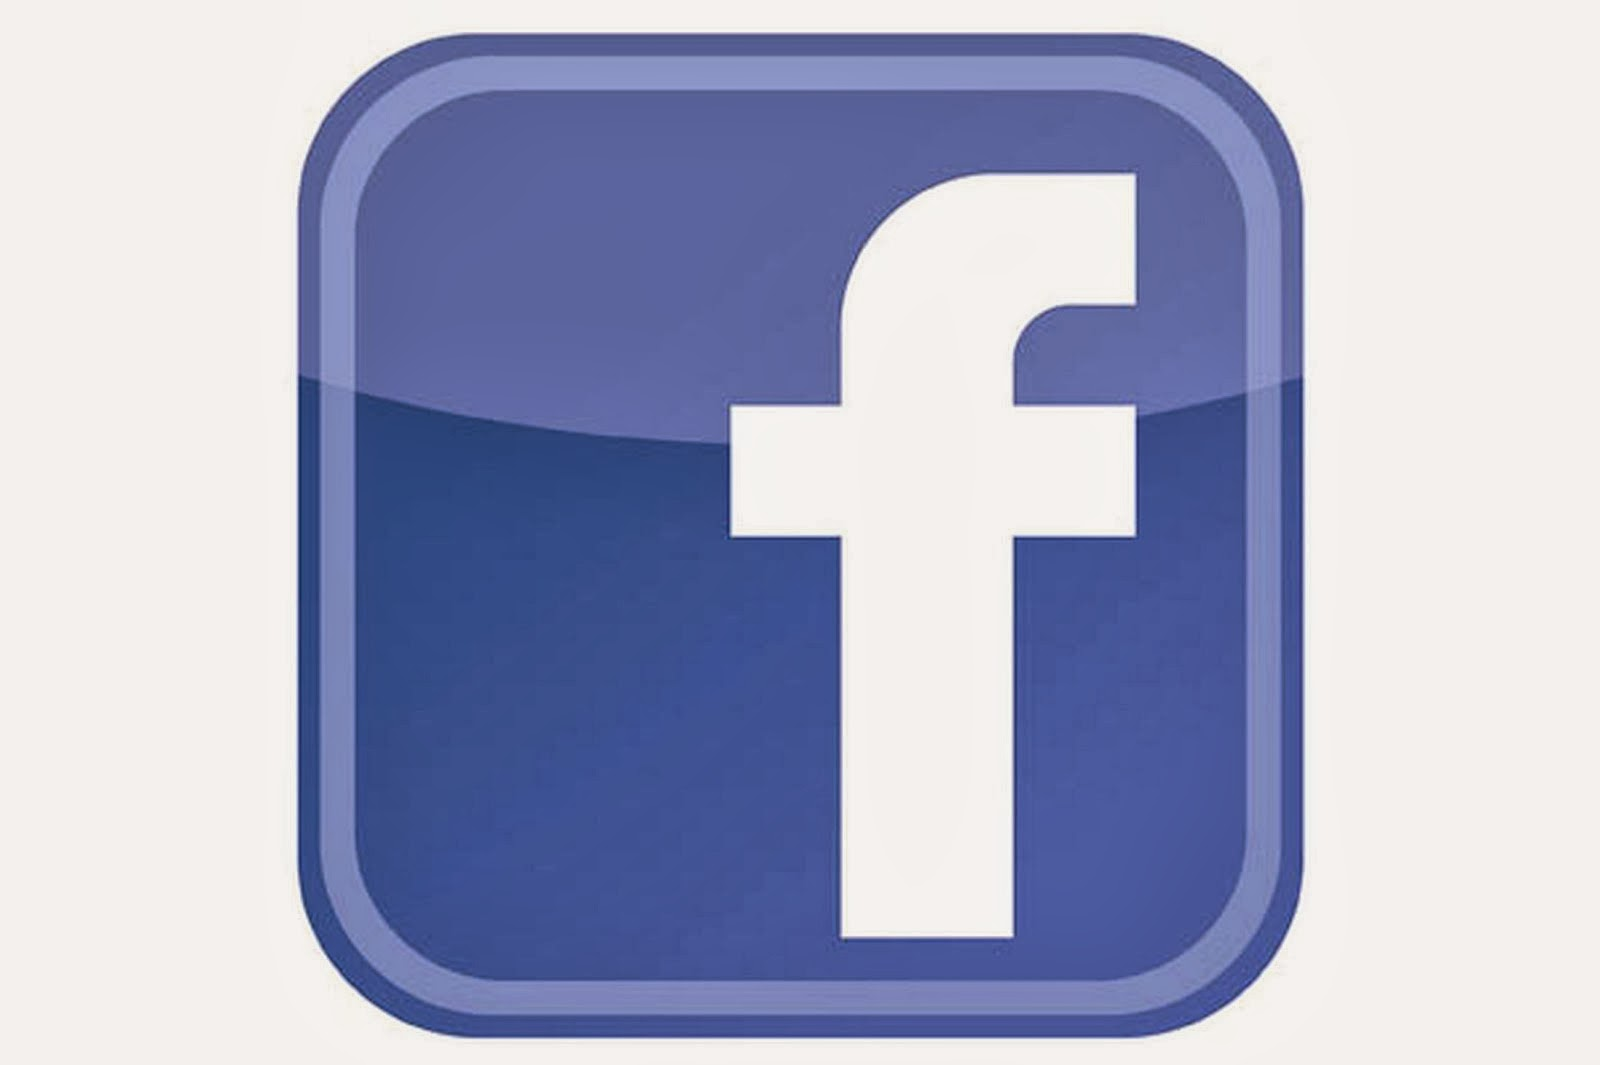 Please click the logo to view my Facebook page